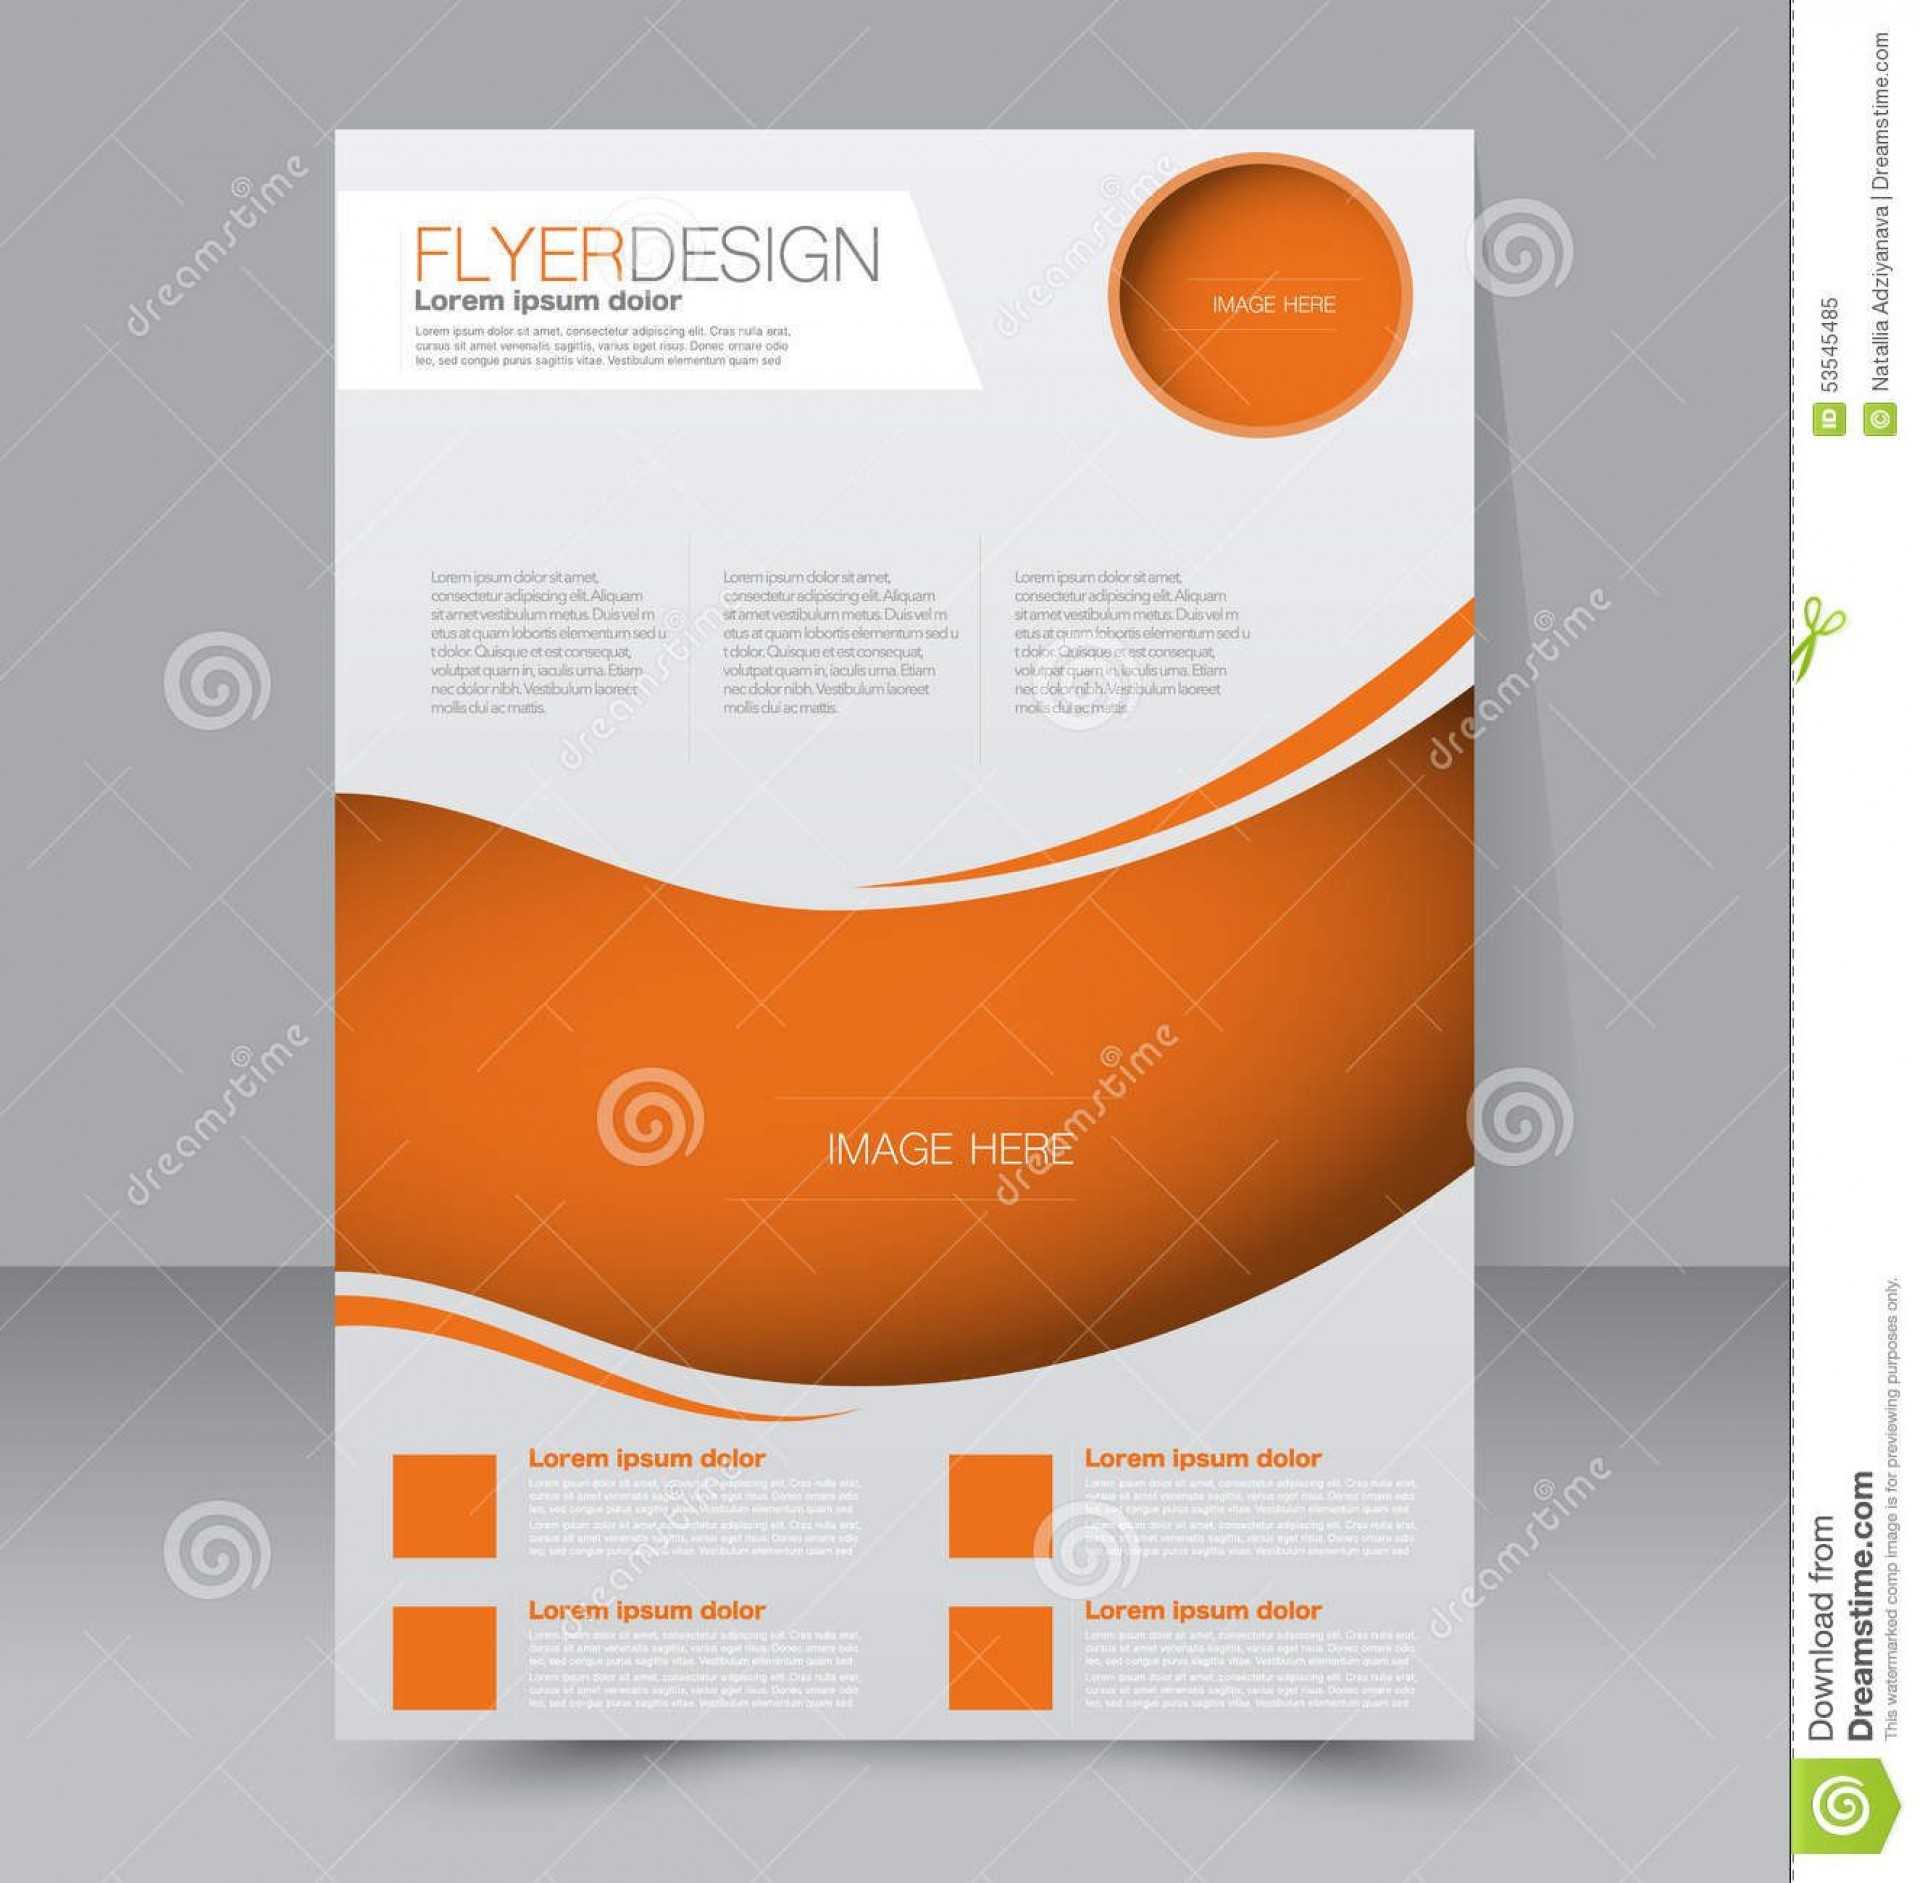 009 Impressive Free Editable Flyer Template High Definition  Busines Fundraising1920